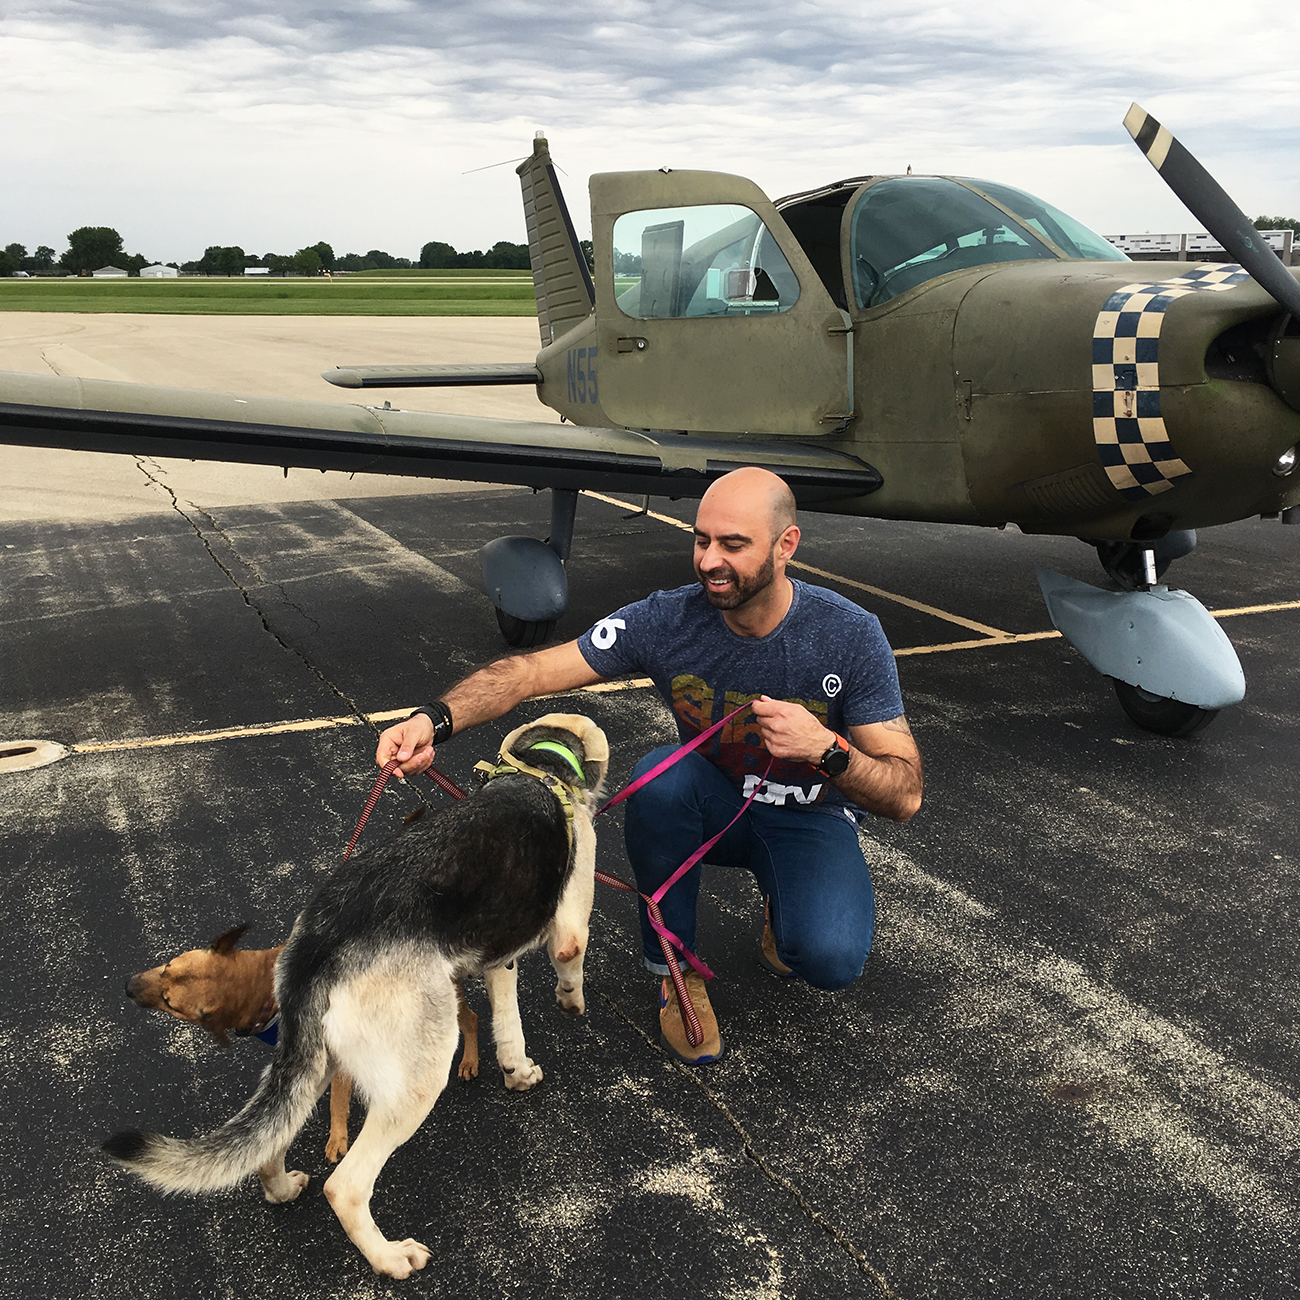 Eduard with two rescues dogs on tarmac with plane